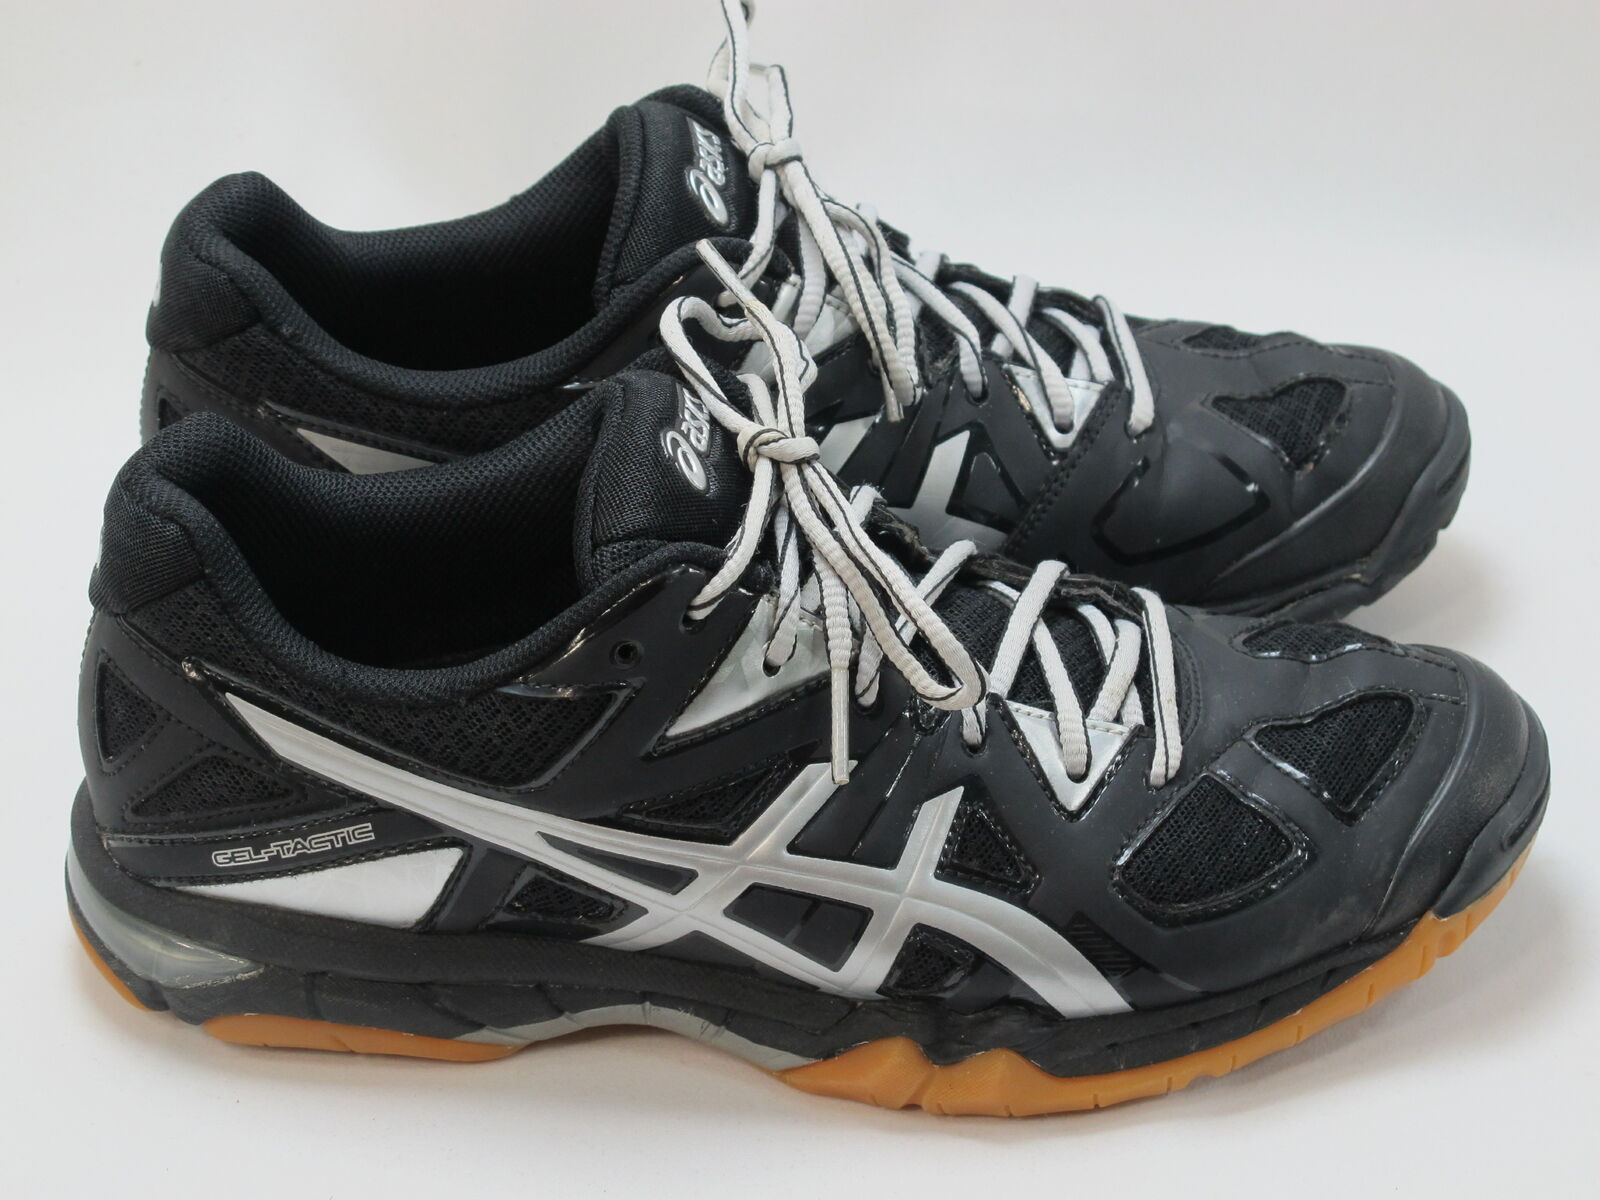 Primary image for ASICS Gel Tactic Volleyball Shoes Women's Size 8.5 US Near Mint Condition Black